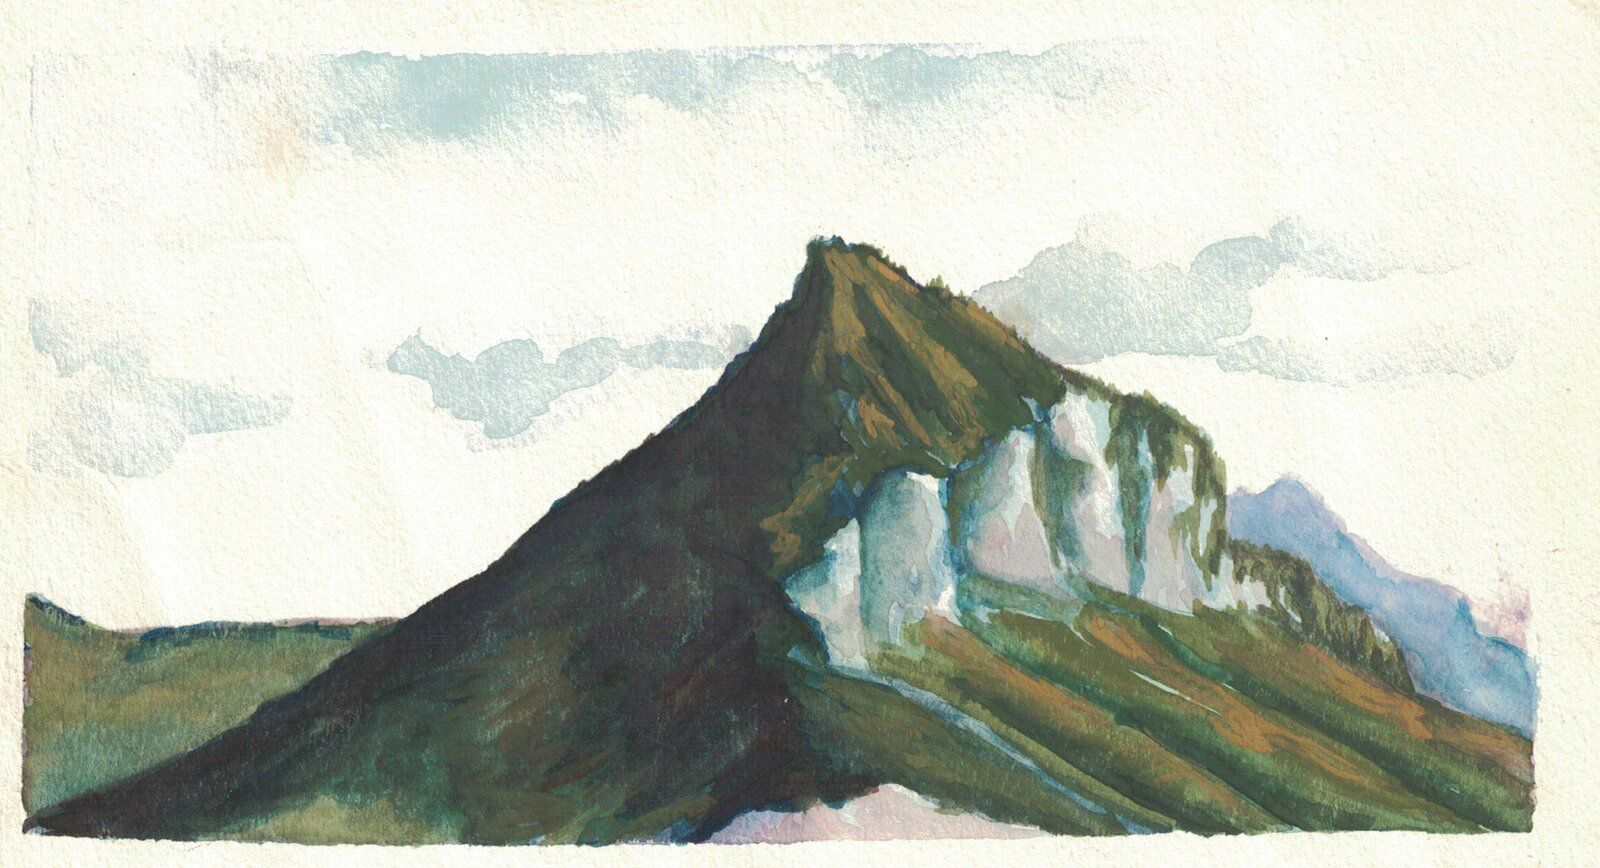 """ Le Néron"", aquarelle de Chantal Roux; 1997/ 18X10cm; Collection particulière.)"